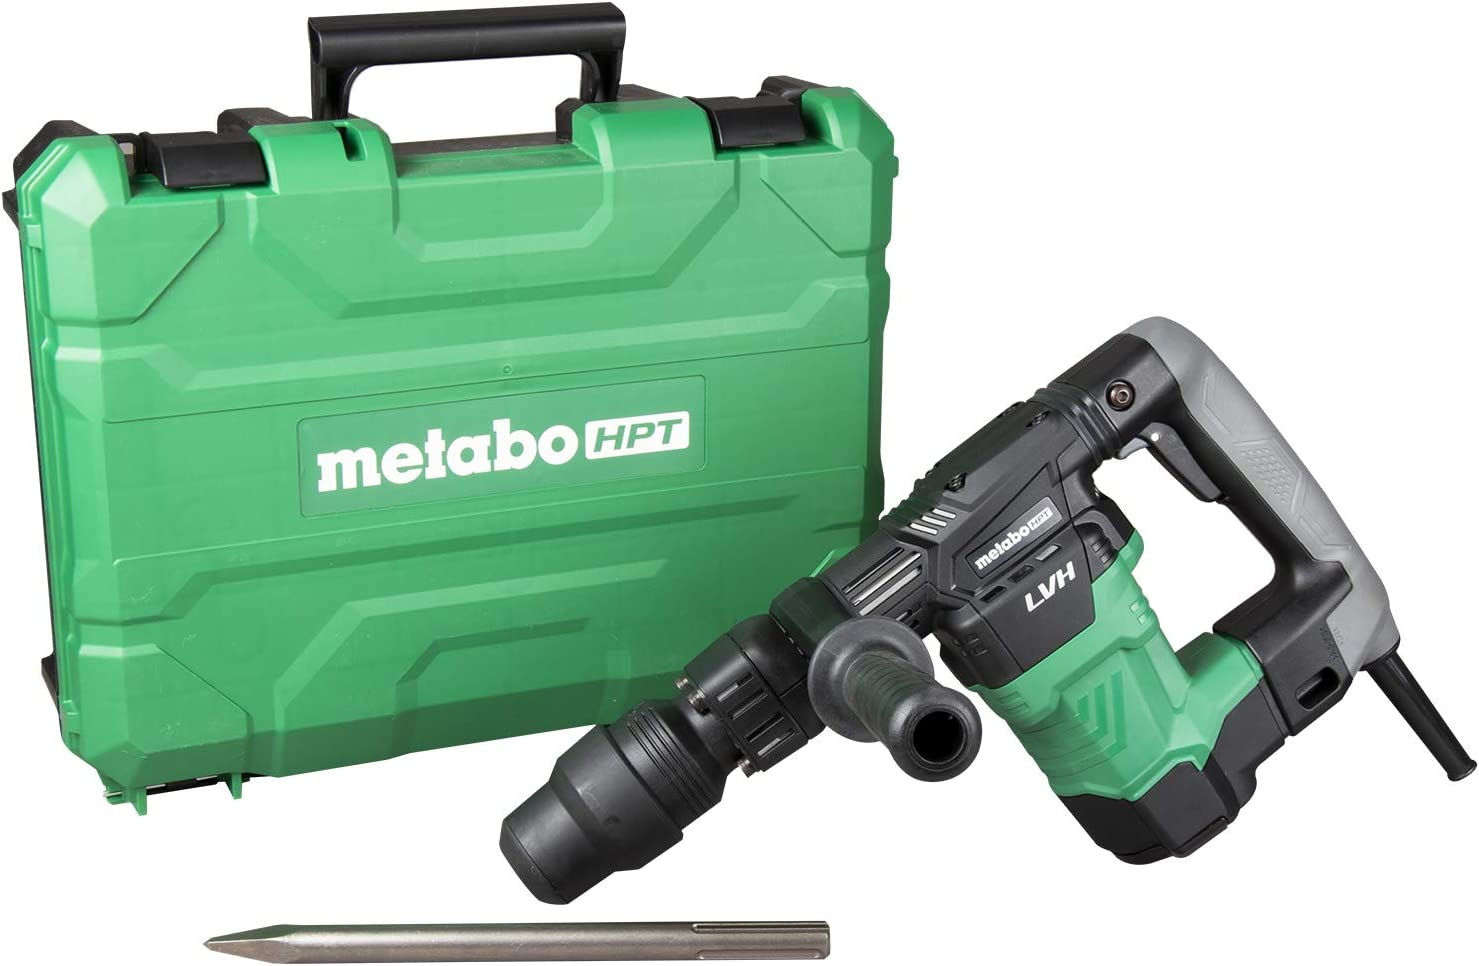 SDS Max Low Vibration Handle Aluminum Connecting Rod Impact Energy 7.4 ft-lbs 1-Year Warranty 11.5 lbs. Metabo HPT H41MB2 Demolition Hammer